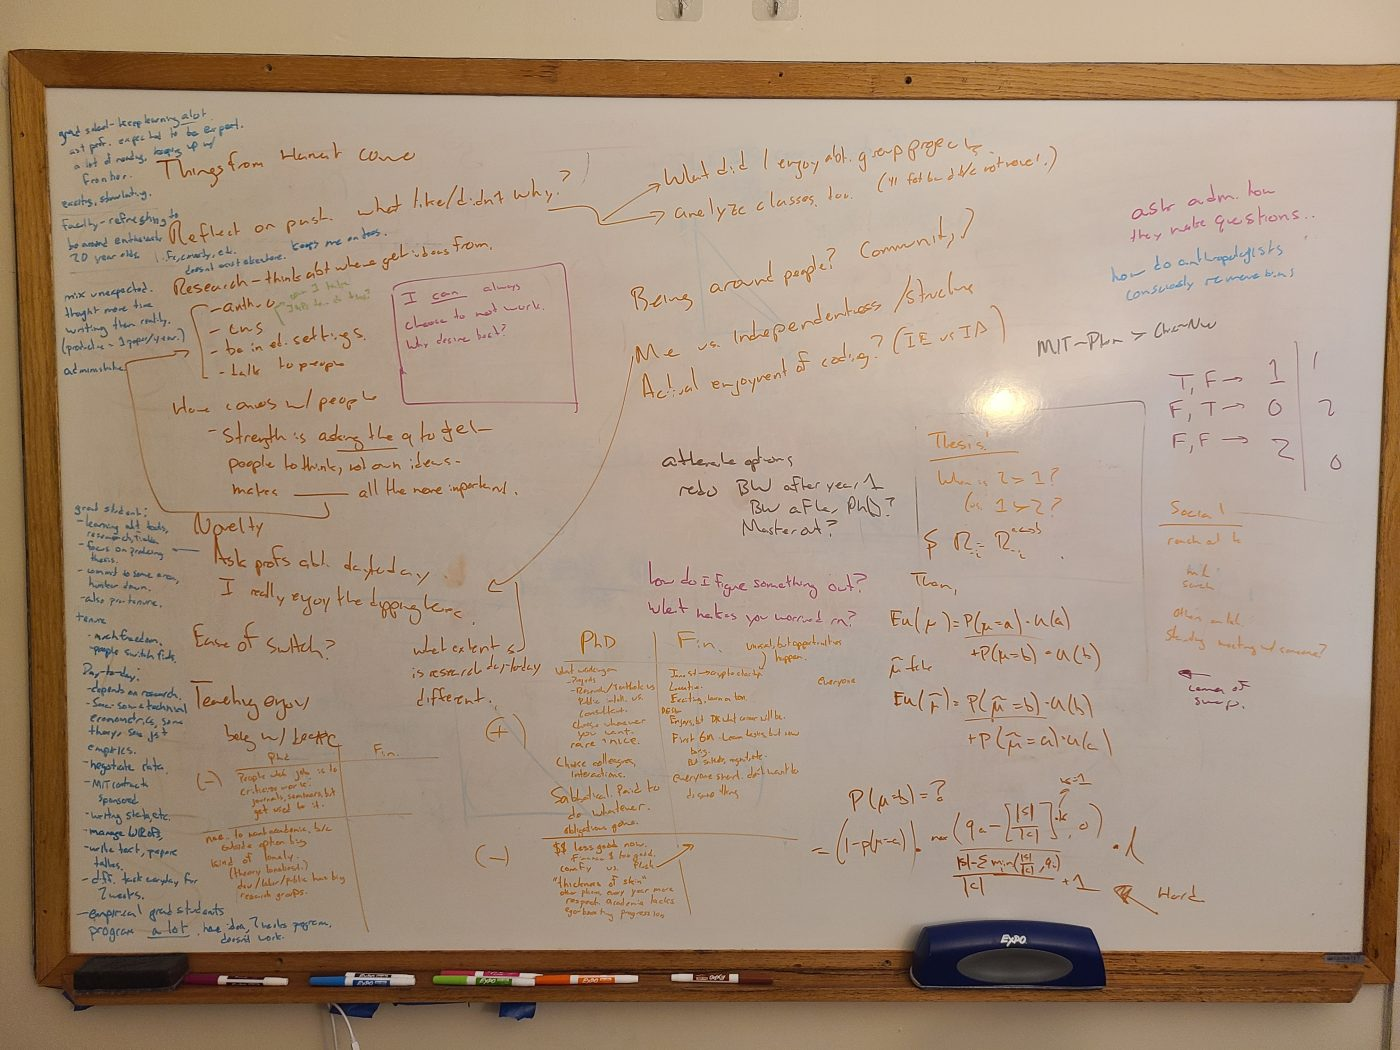 whiteboard with thoughts